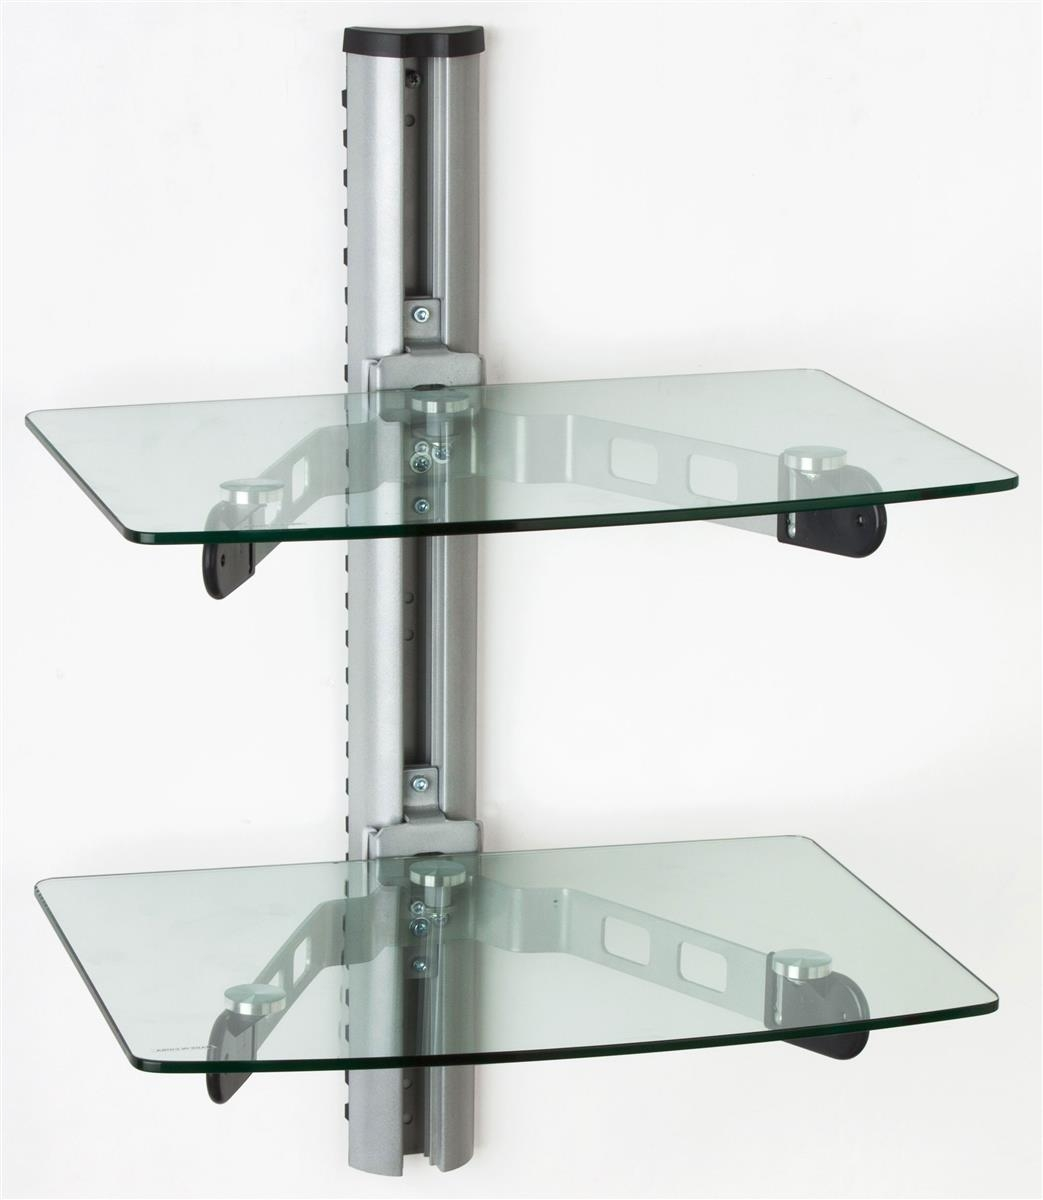 Wall Mounted Glass Shelves Av Component Stand For Wall Mounted Glass Shelves (Image 7 of 15)